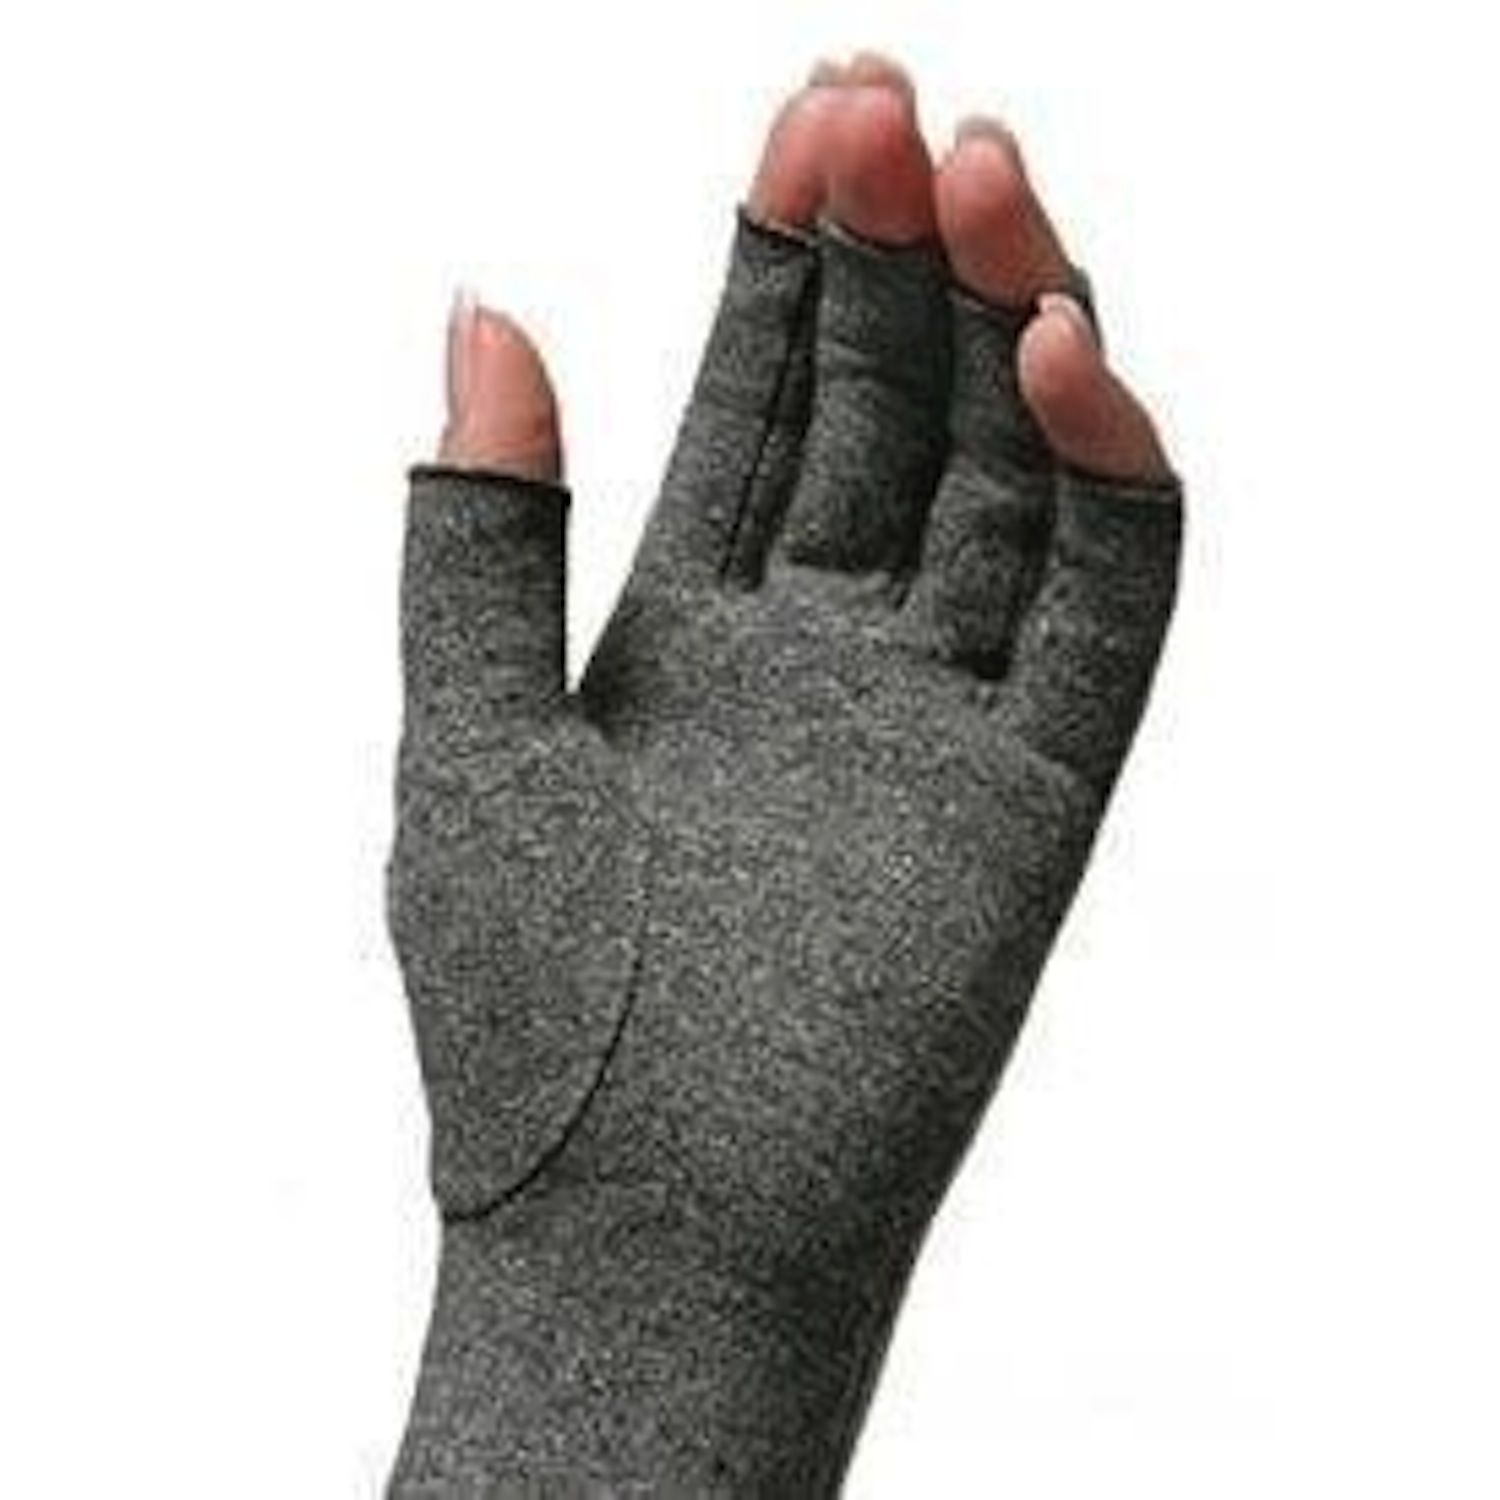 6b01519b58 The 8 Best Arthritis Gloves of 2019